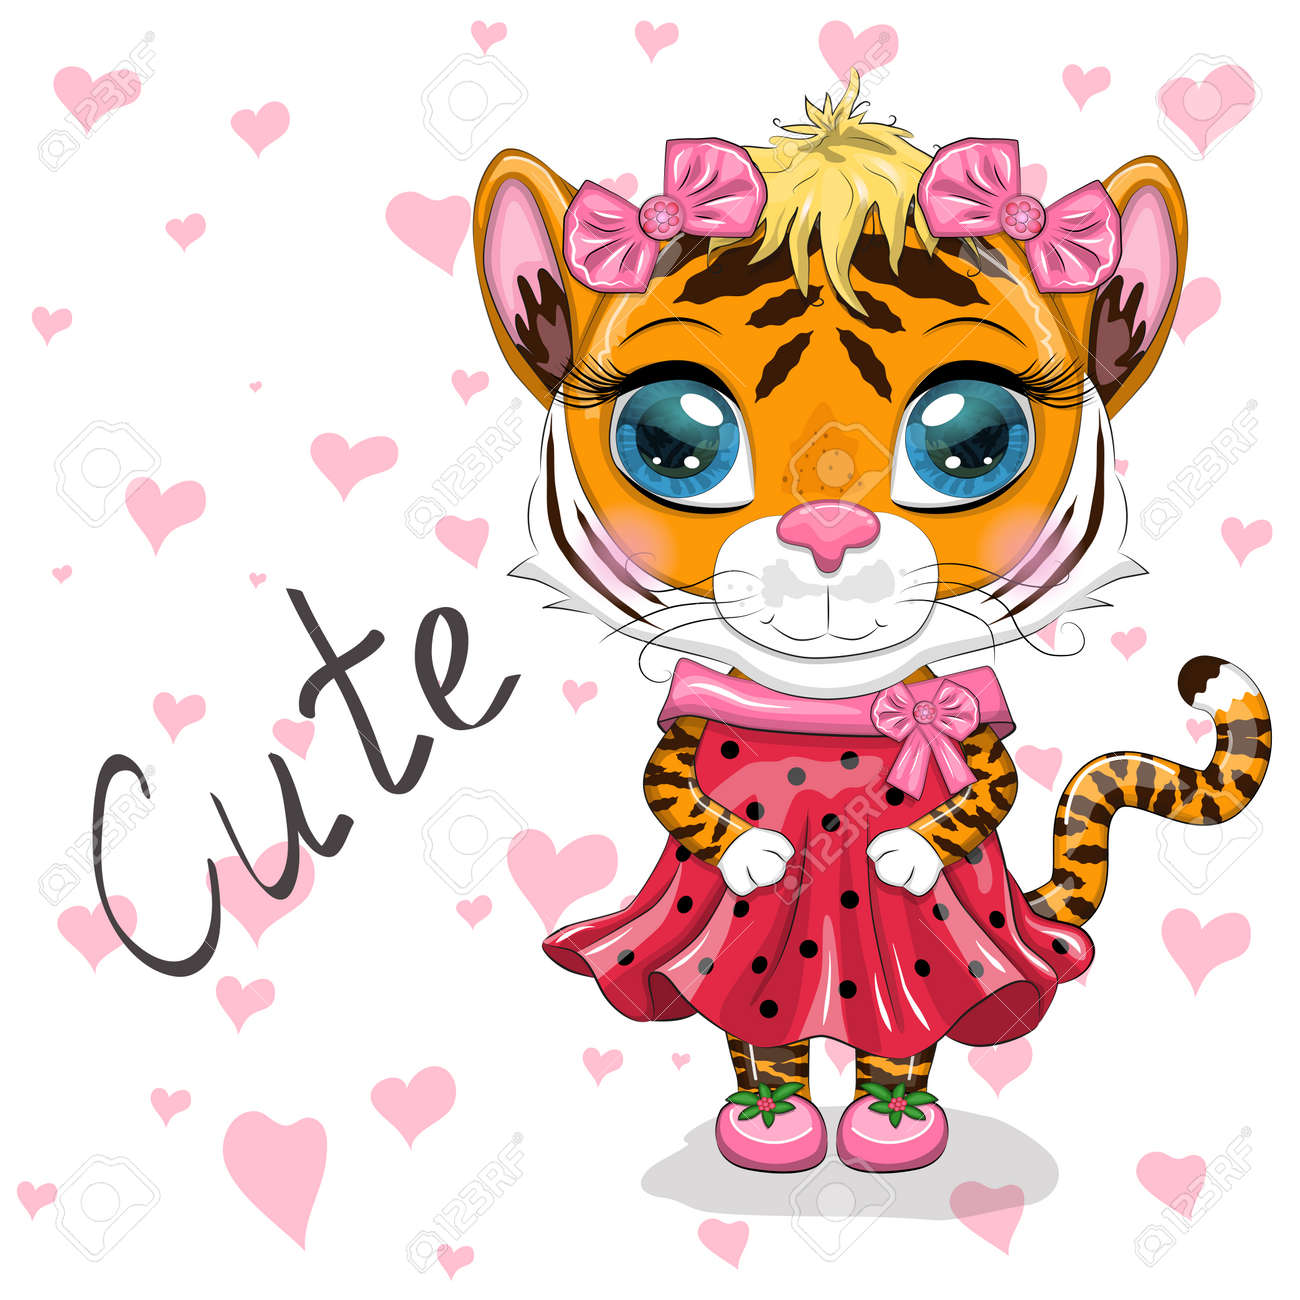 Cute cartoon tiger girl with beautiful eyes in a dress. Chinese New Year 2022, Christmas Year of the Tiger. Lunar new year 2022. - 170550046